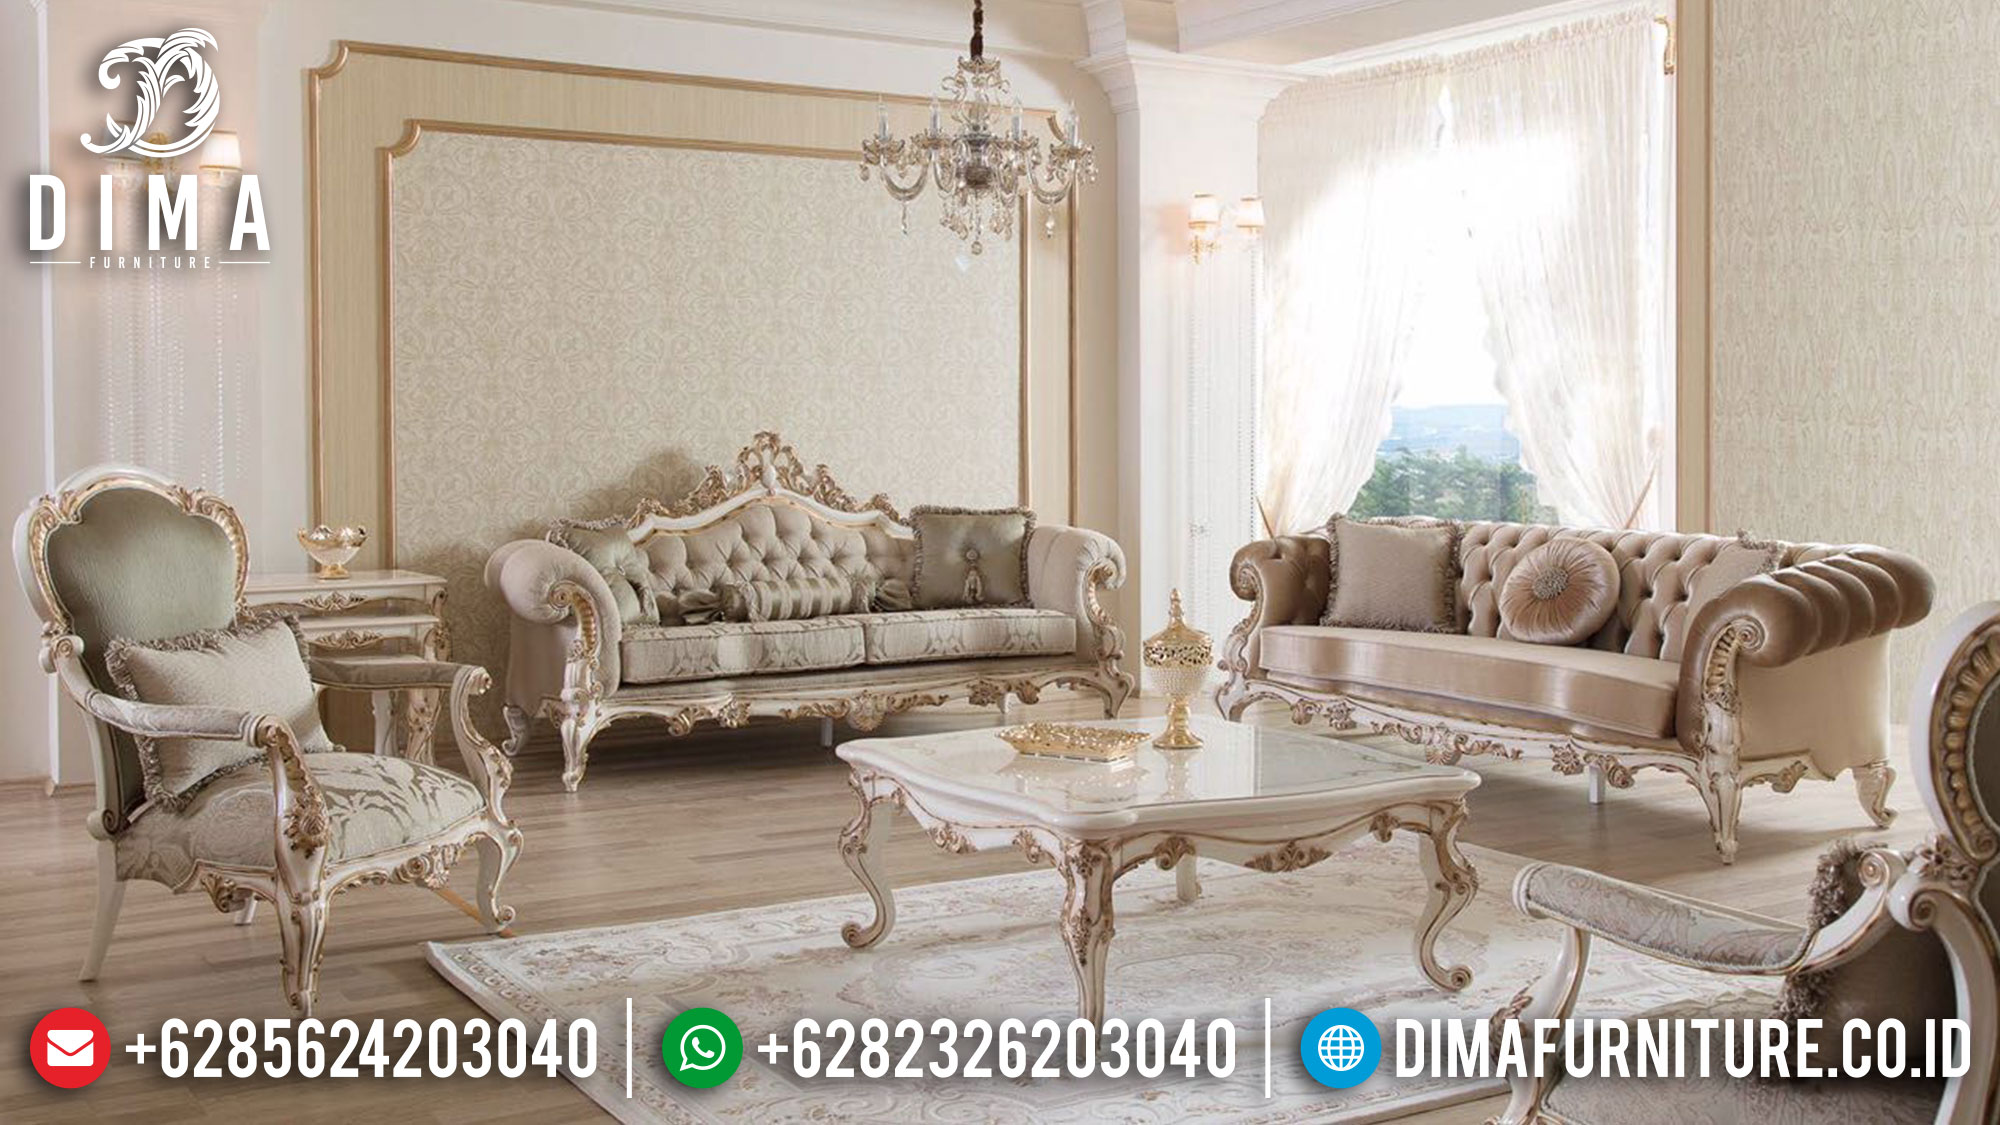 New Sofa Tamu Jepara Ukiran Classic Luxury Best Collection Furniture Jepara Ttj-1533